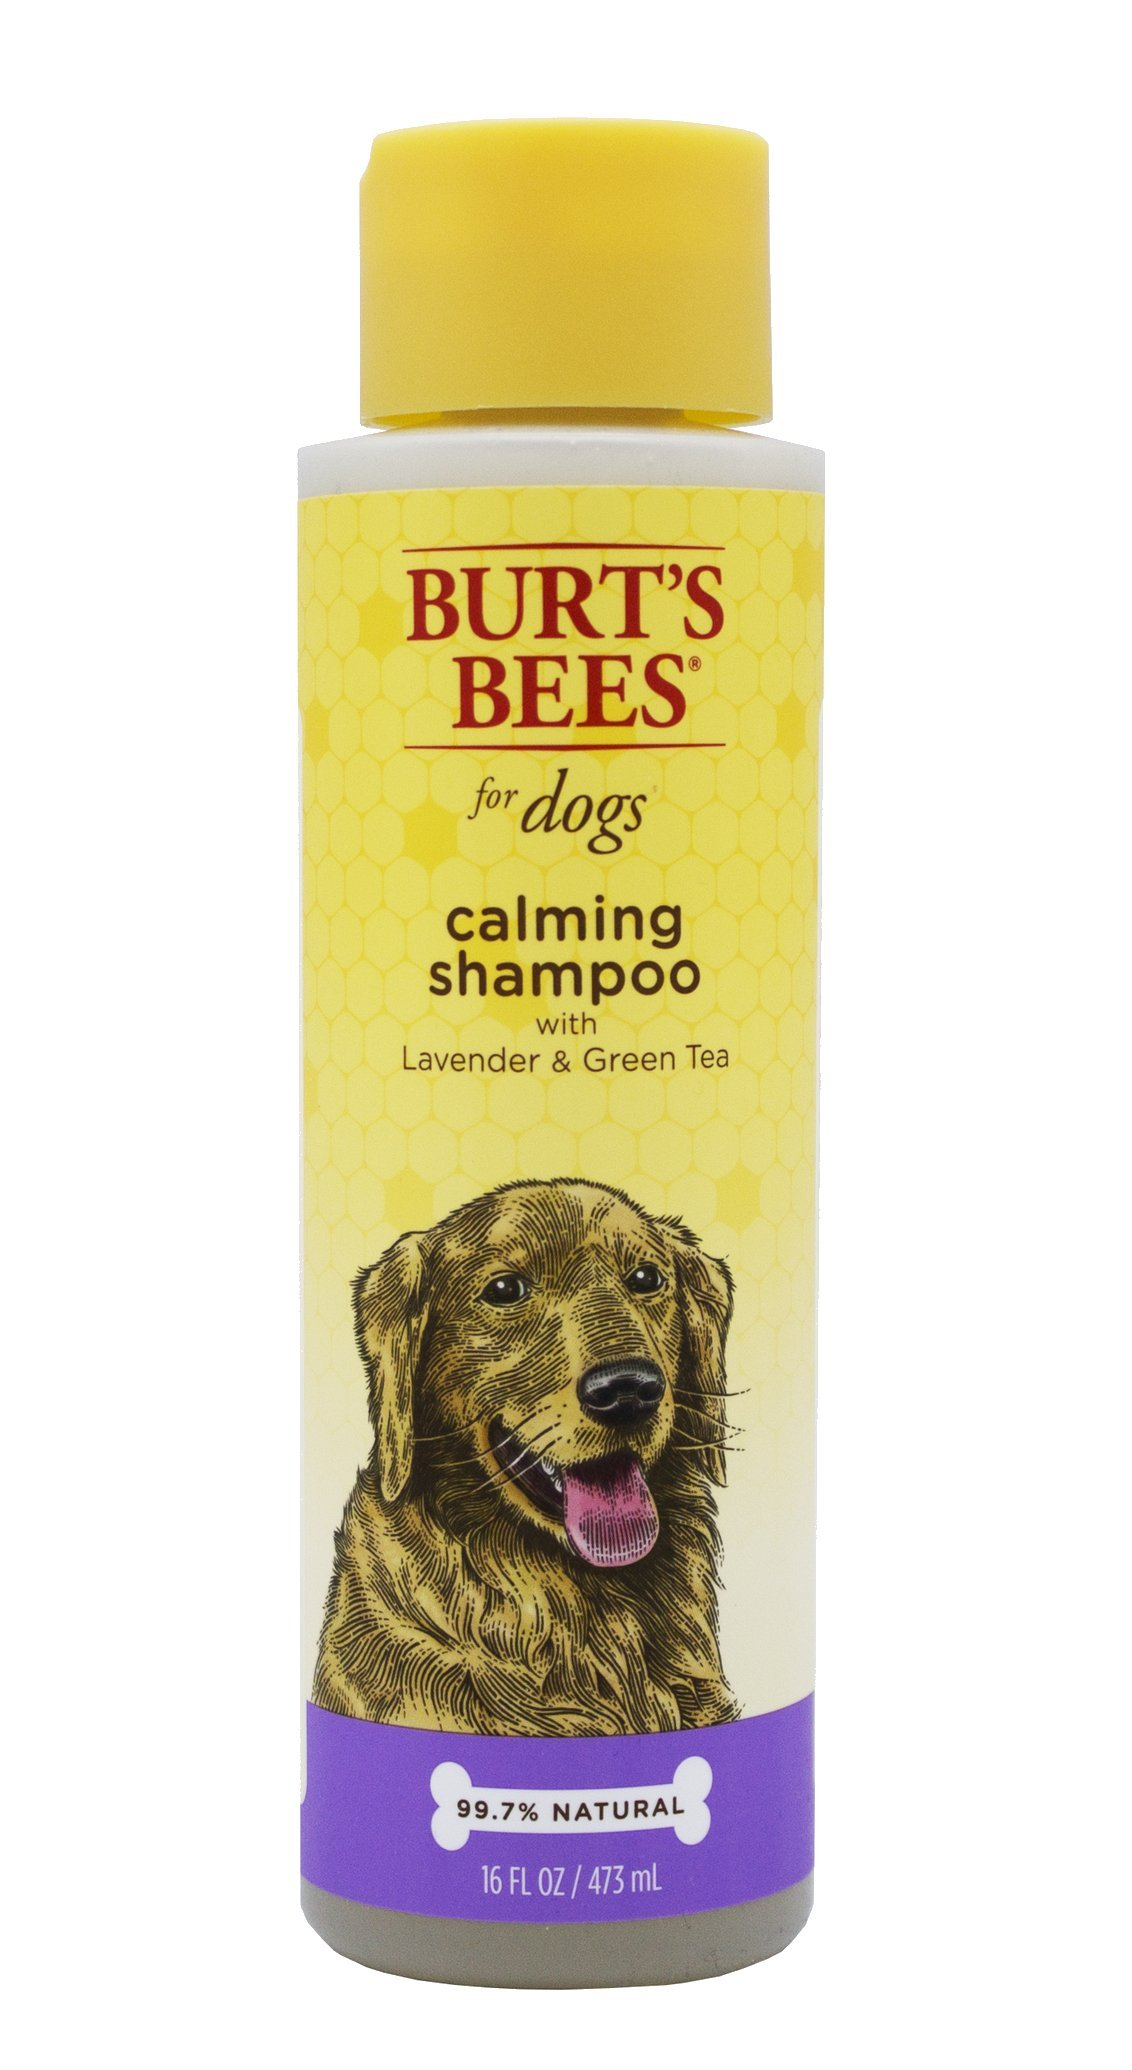 Burt's Bees for Dogs Natural Calming Shampoo with Lavender and Green Tea | Puppy and Dog Shampoo, 16 Ounces